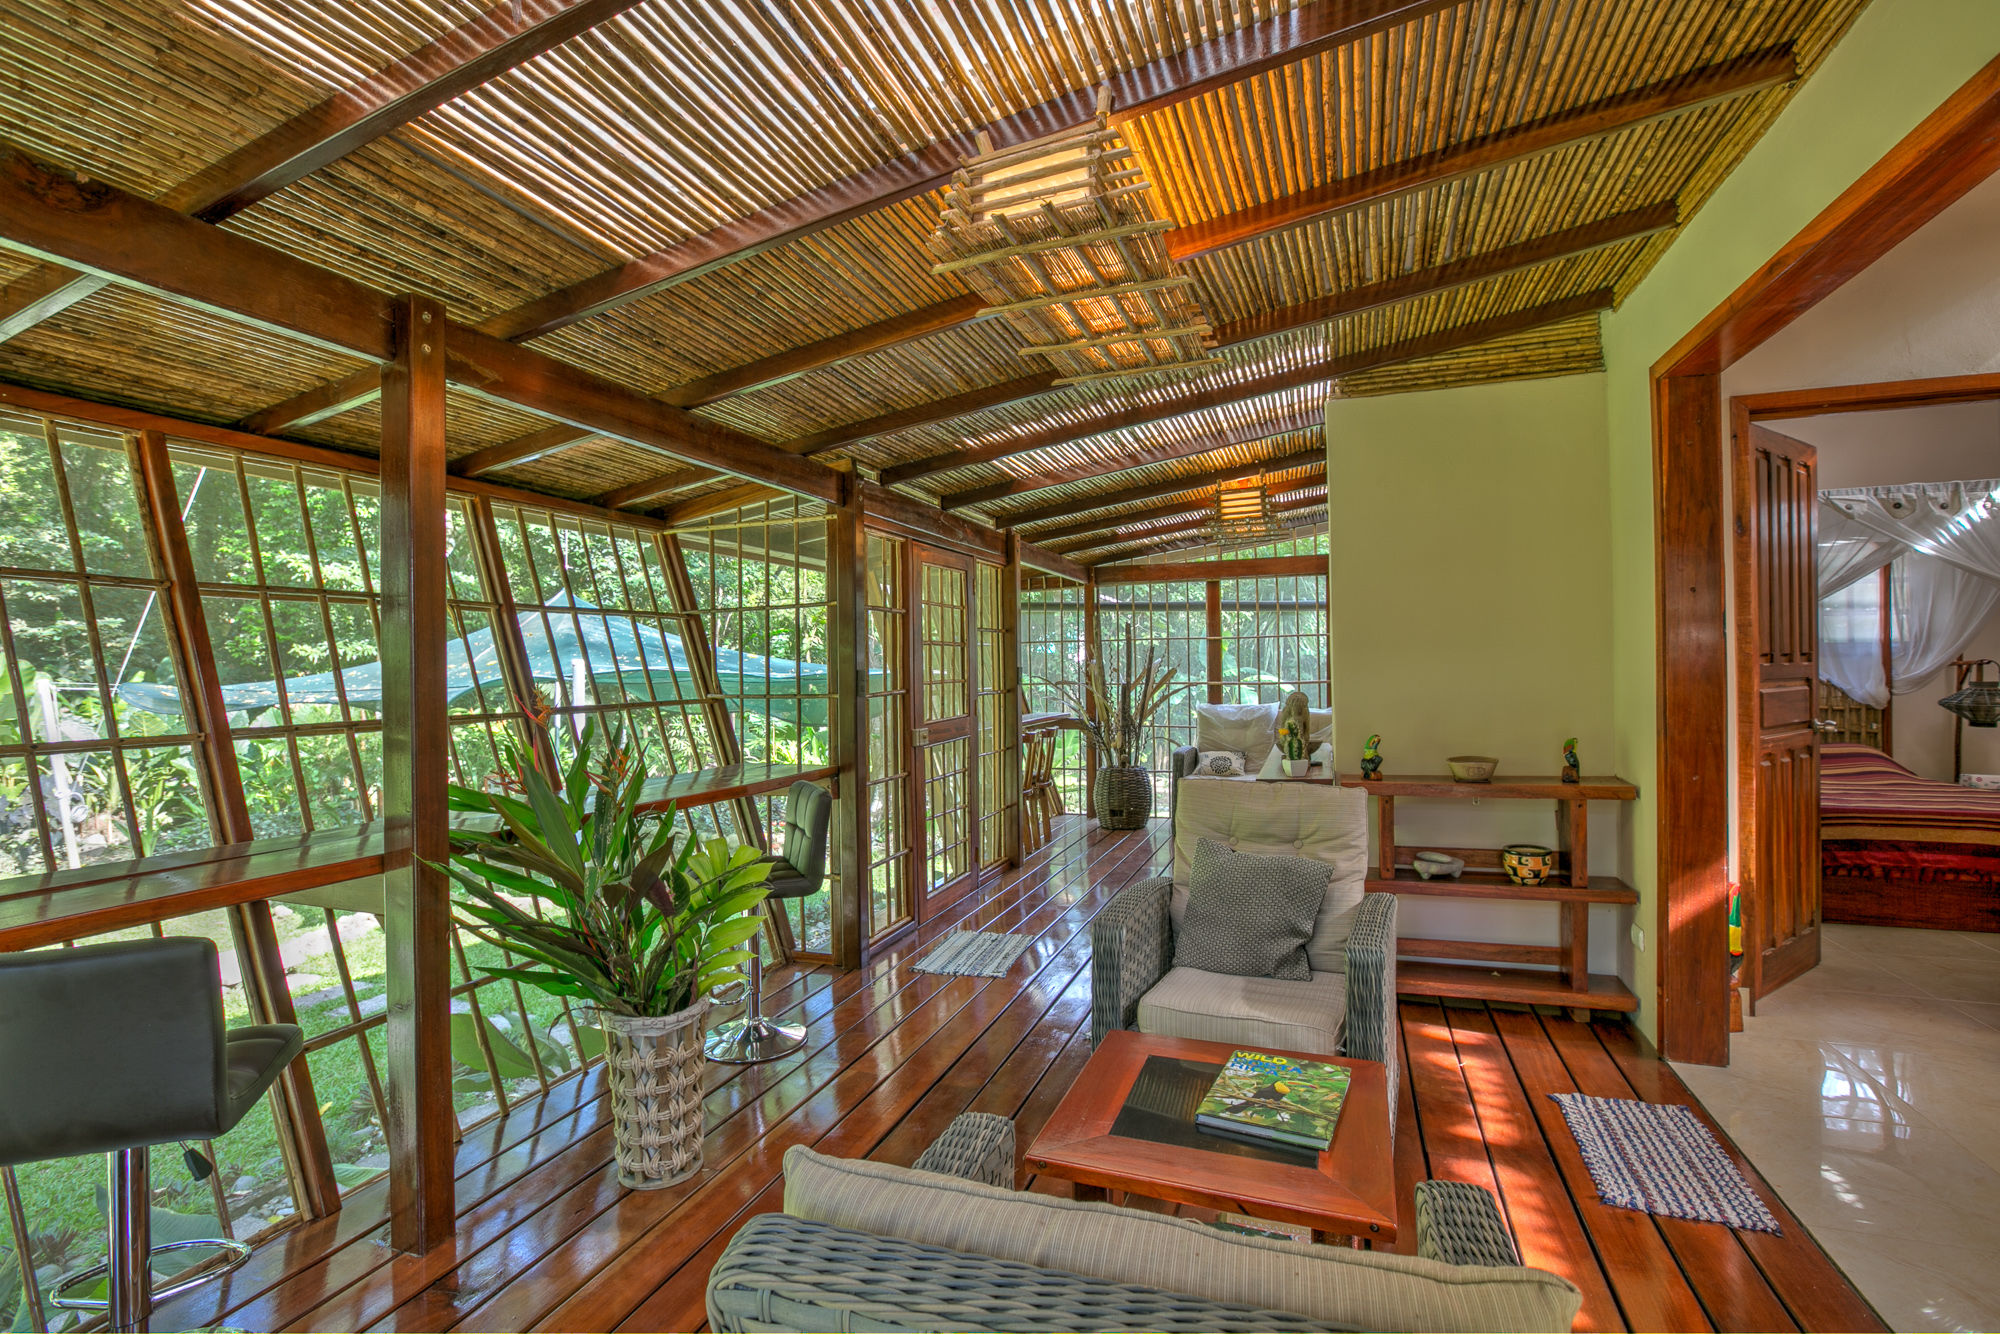 Jungle Villa #1 - Lounge in vacation villa with garden view at Caribbean coast